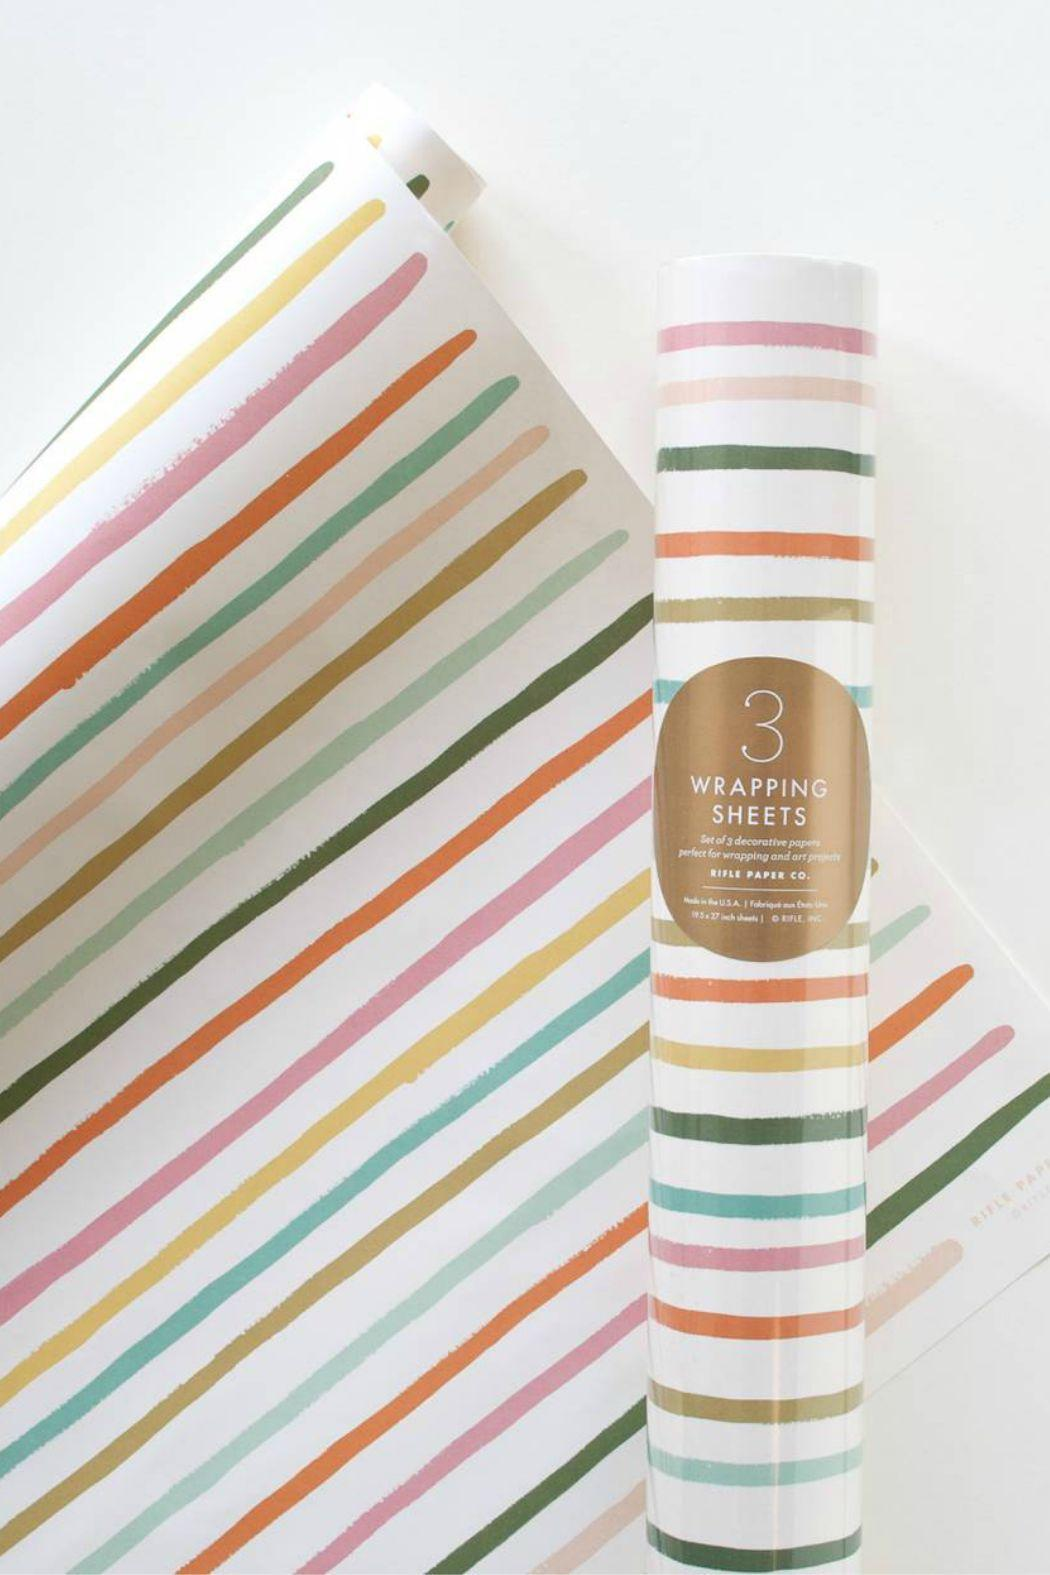 Rifle paper co decorative wrap sheets from washington by